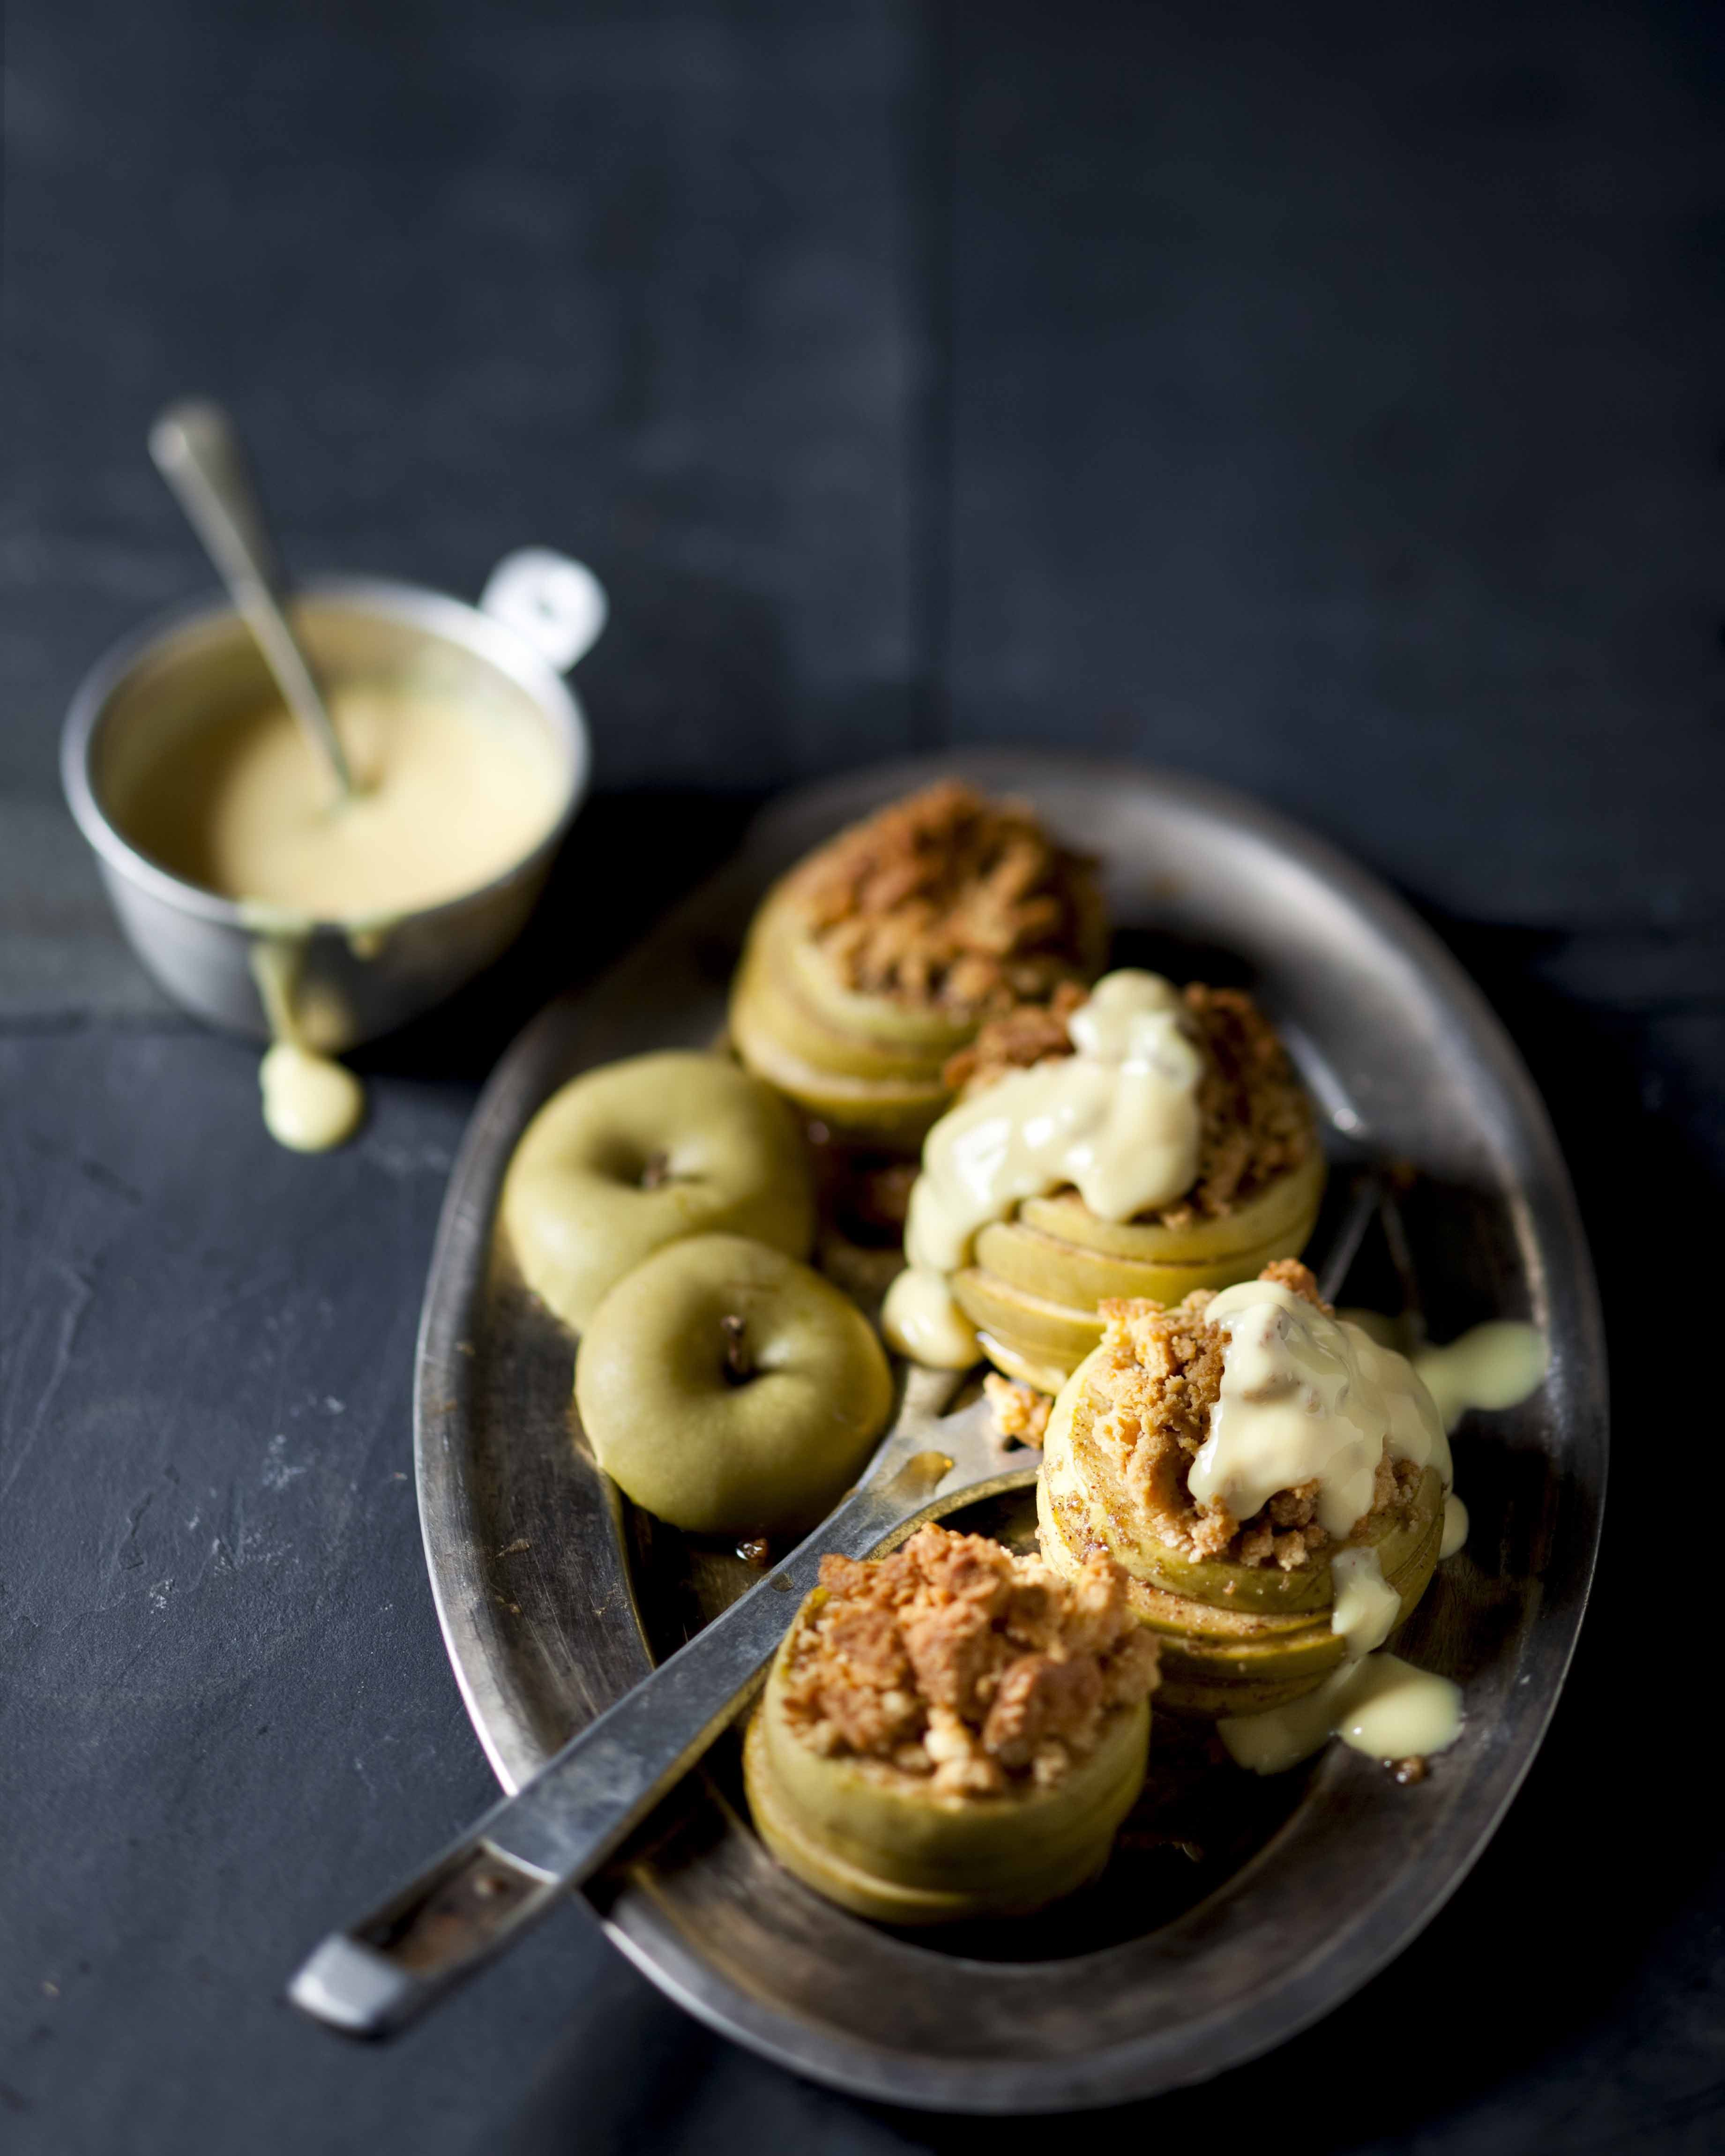 Baked apples with tennis biscuit crumbs and custard - A super-quick apple crumble! #Apples #Recipe >>> http://www.picknpay.co.za/recipe-search-results/baked-apples-with-tennis-biscuit-crumbs-and-custar